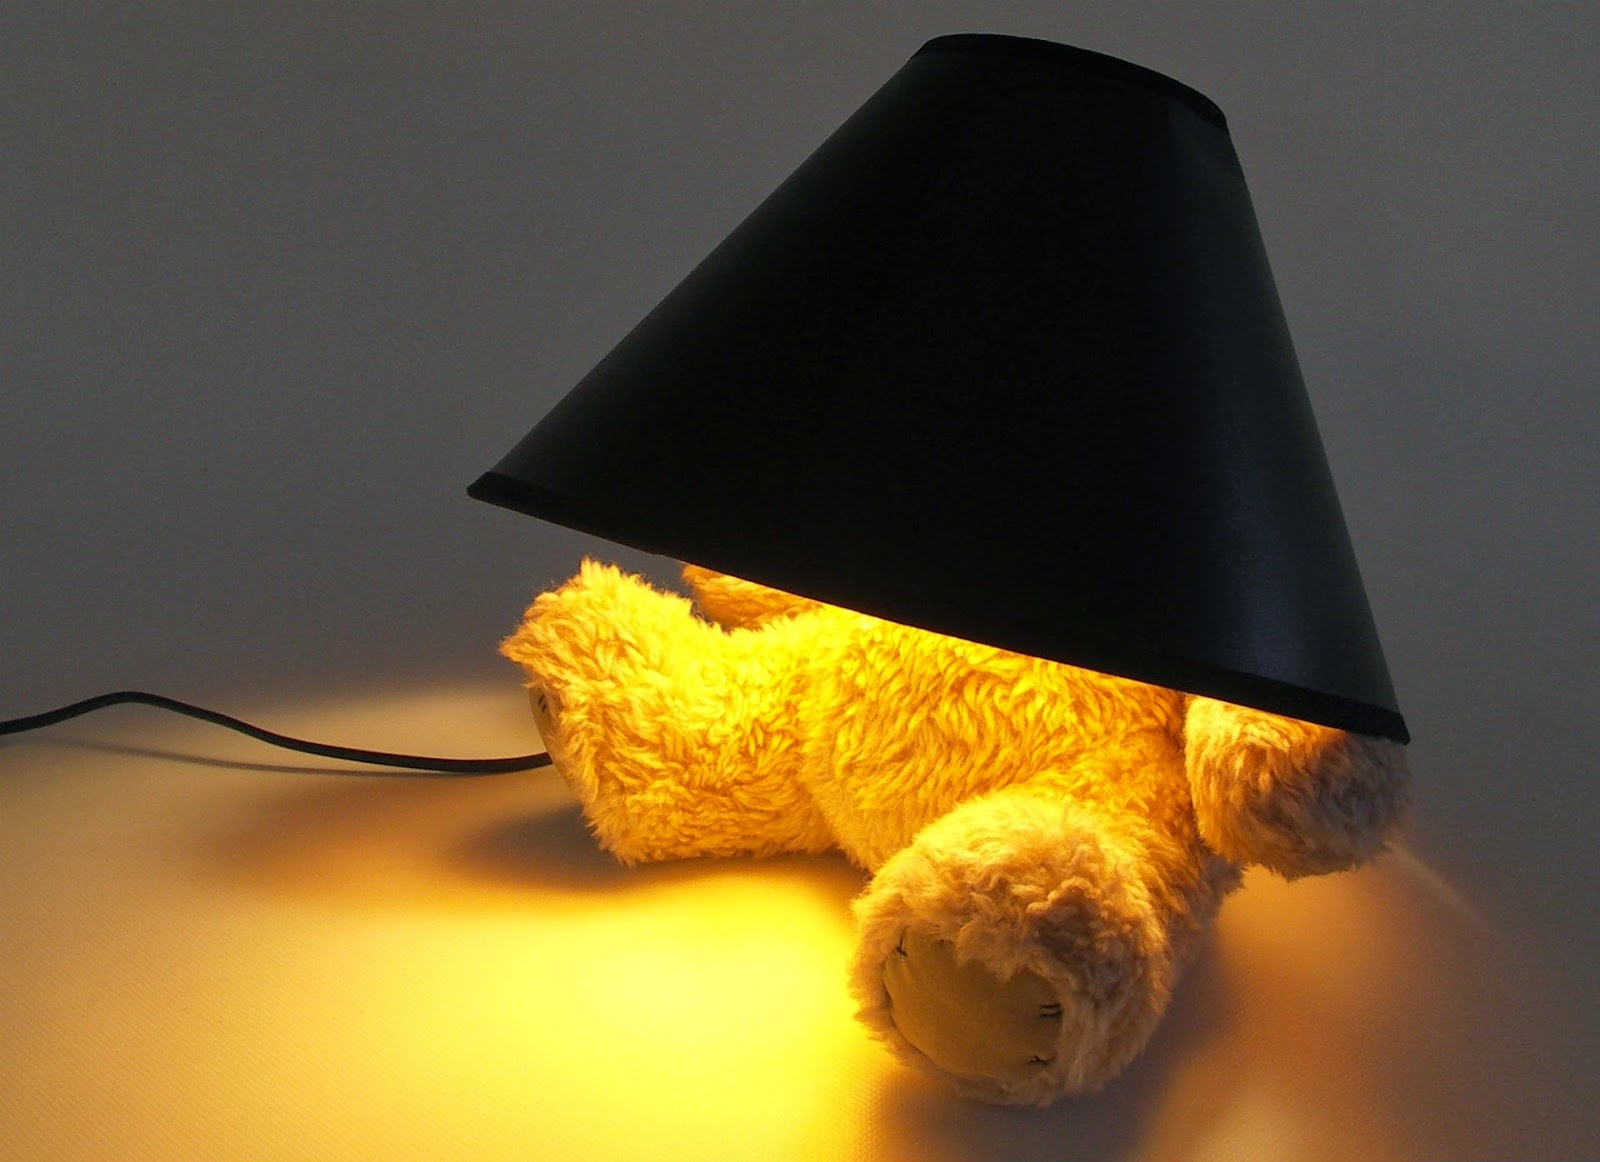 Teddy-hide-lamp-funny-pictures-for-social-sharing.jpg